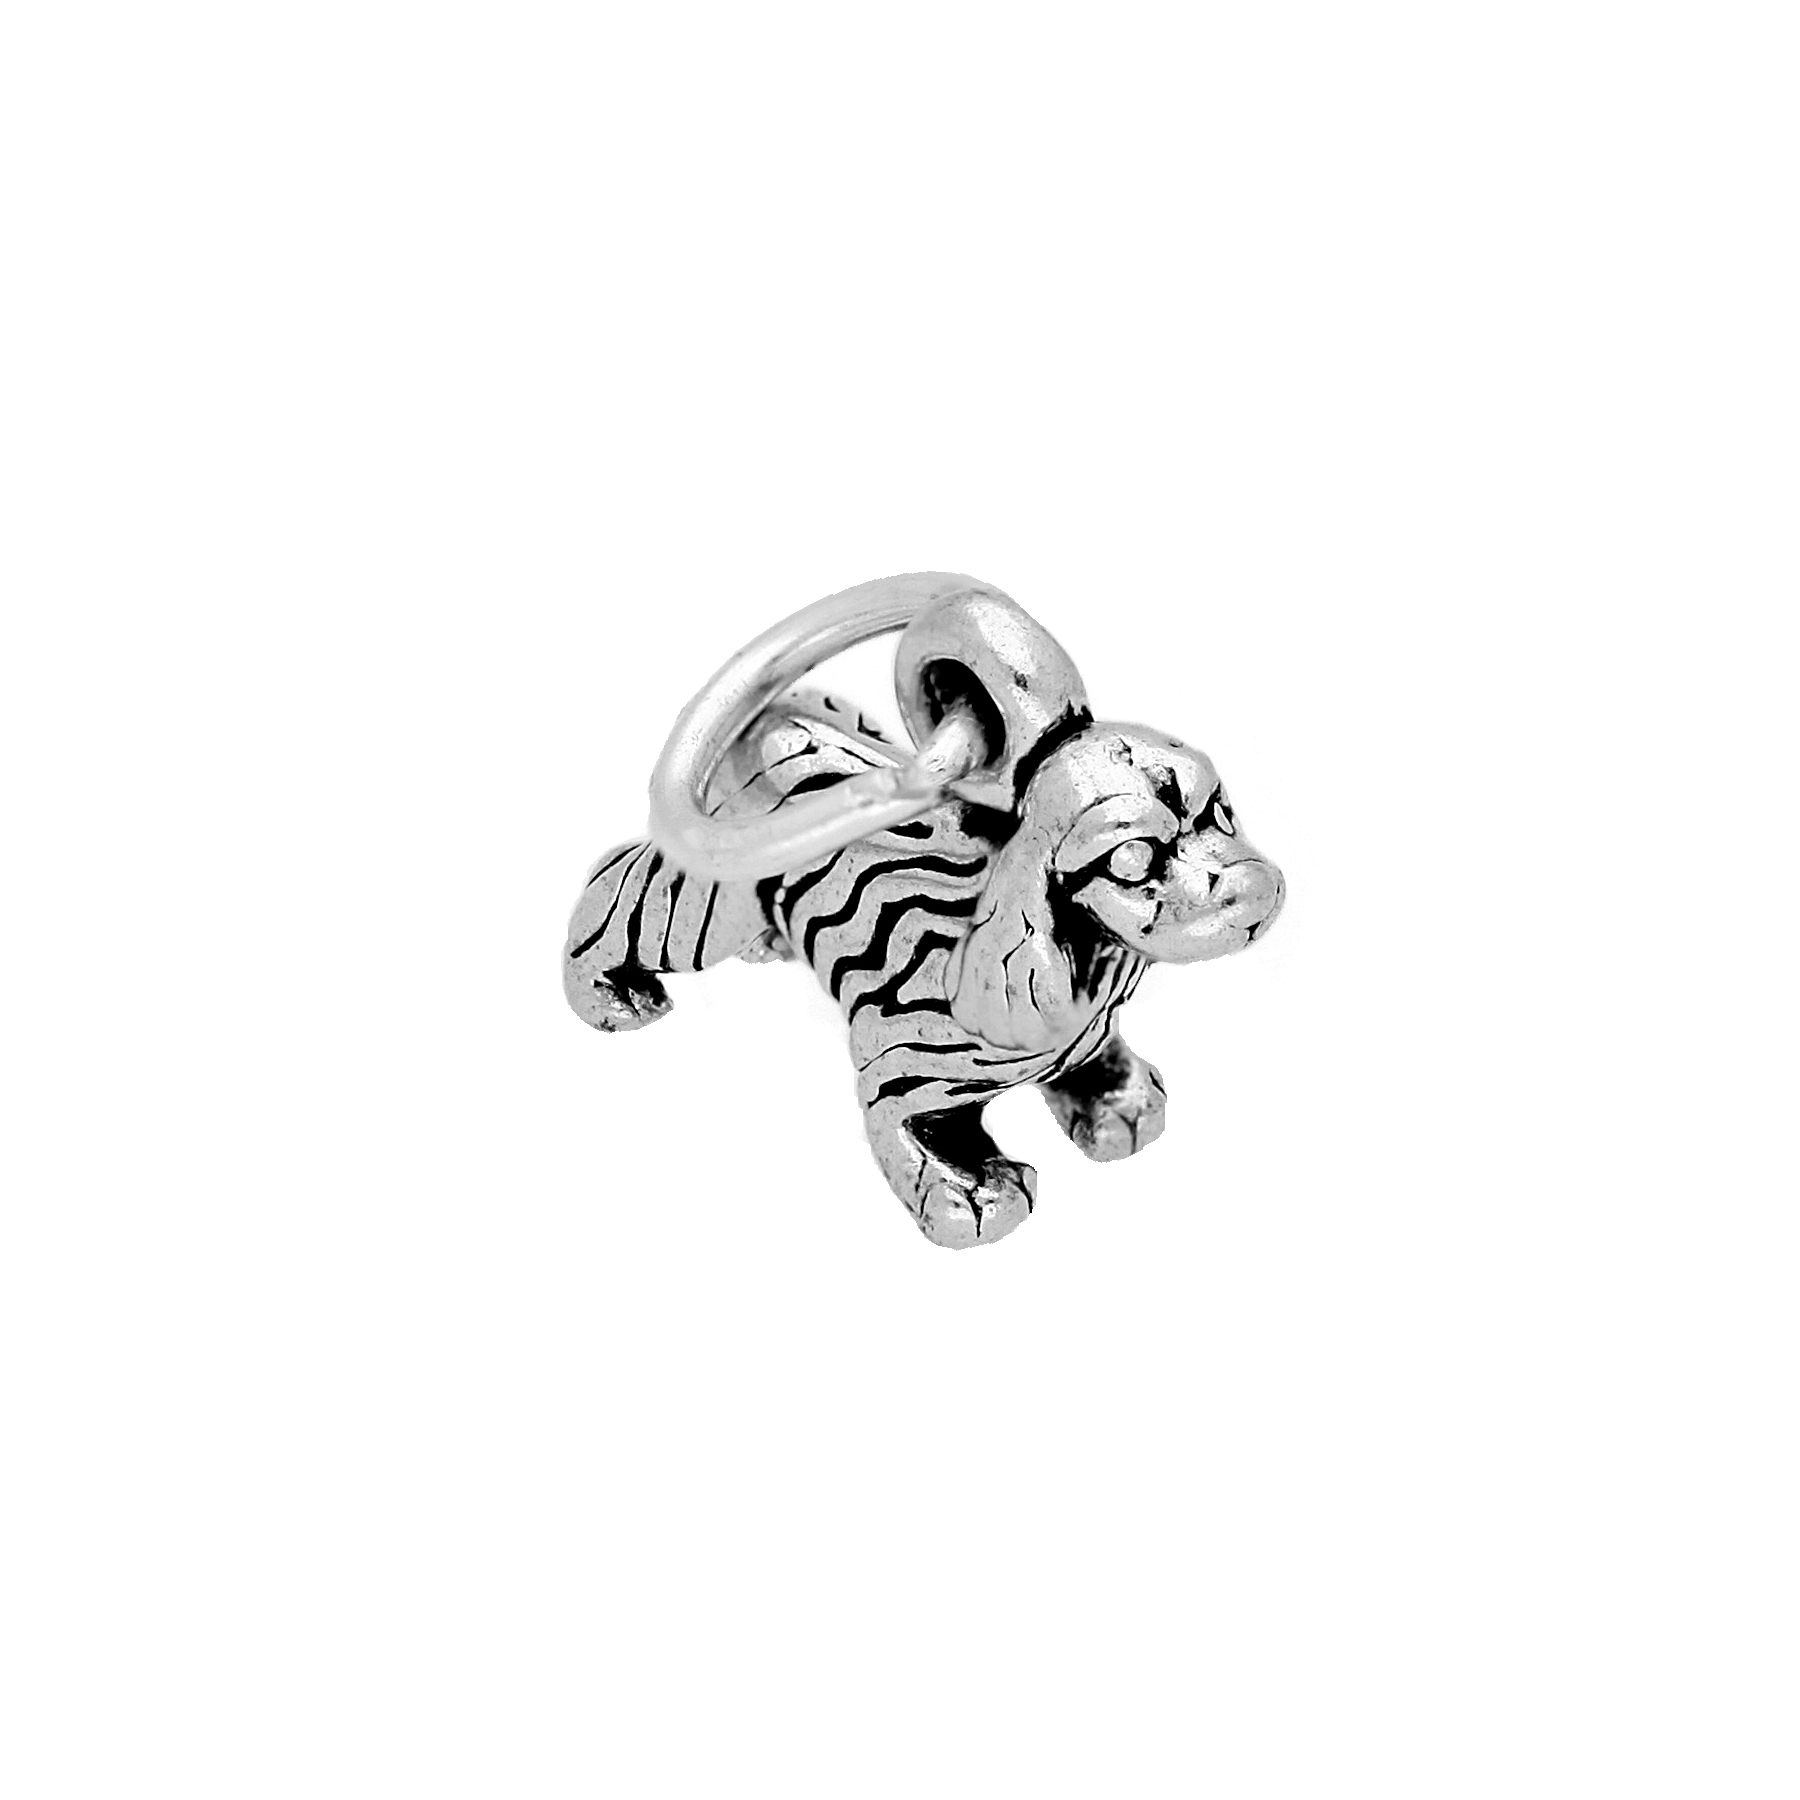 An image of Sterling Silver Irish Setter Charm